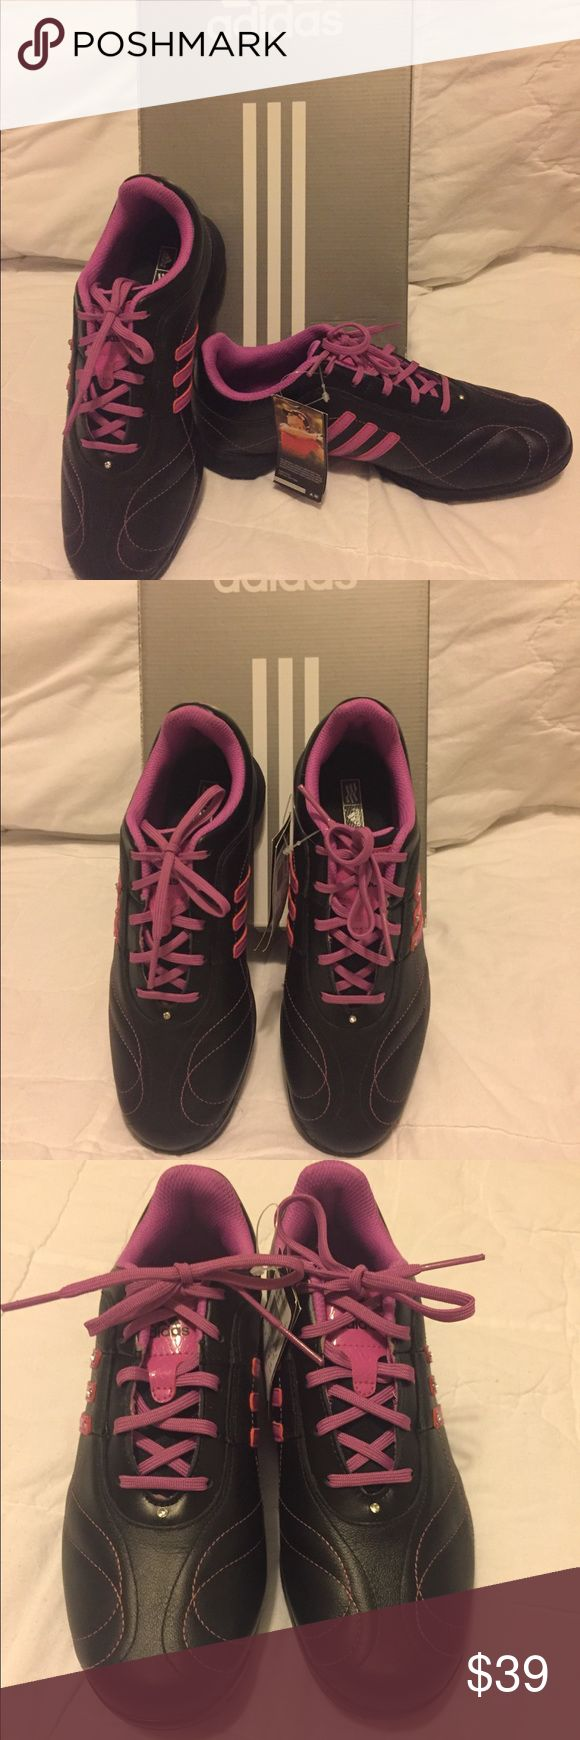 Women's Adidas Signature Natalie 2 Golf Shoes NWT New stylish Adidas women's golf shoes in black and hibiscus pink with a touch of bling.  Waterproof and developed in collaboration with LPGA Tour Professional Natalie Gulbis. Size 7 1/2. Smoke free home. adidas Shoes Athletic Shoes